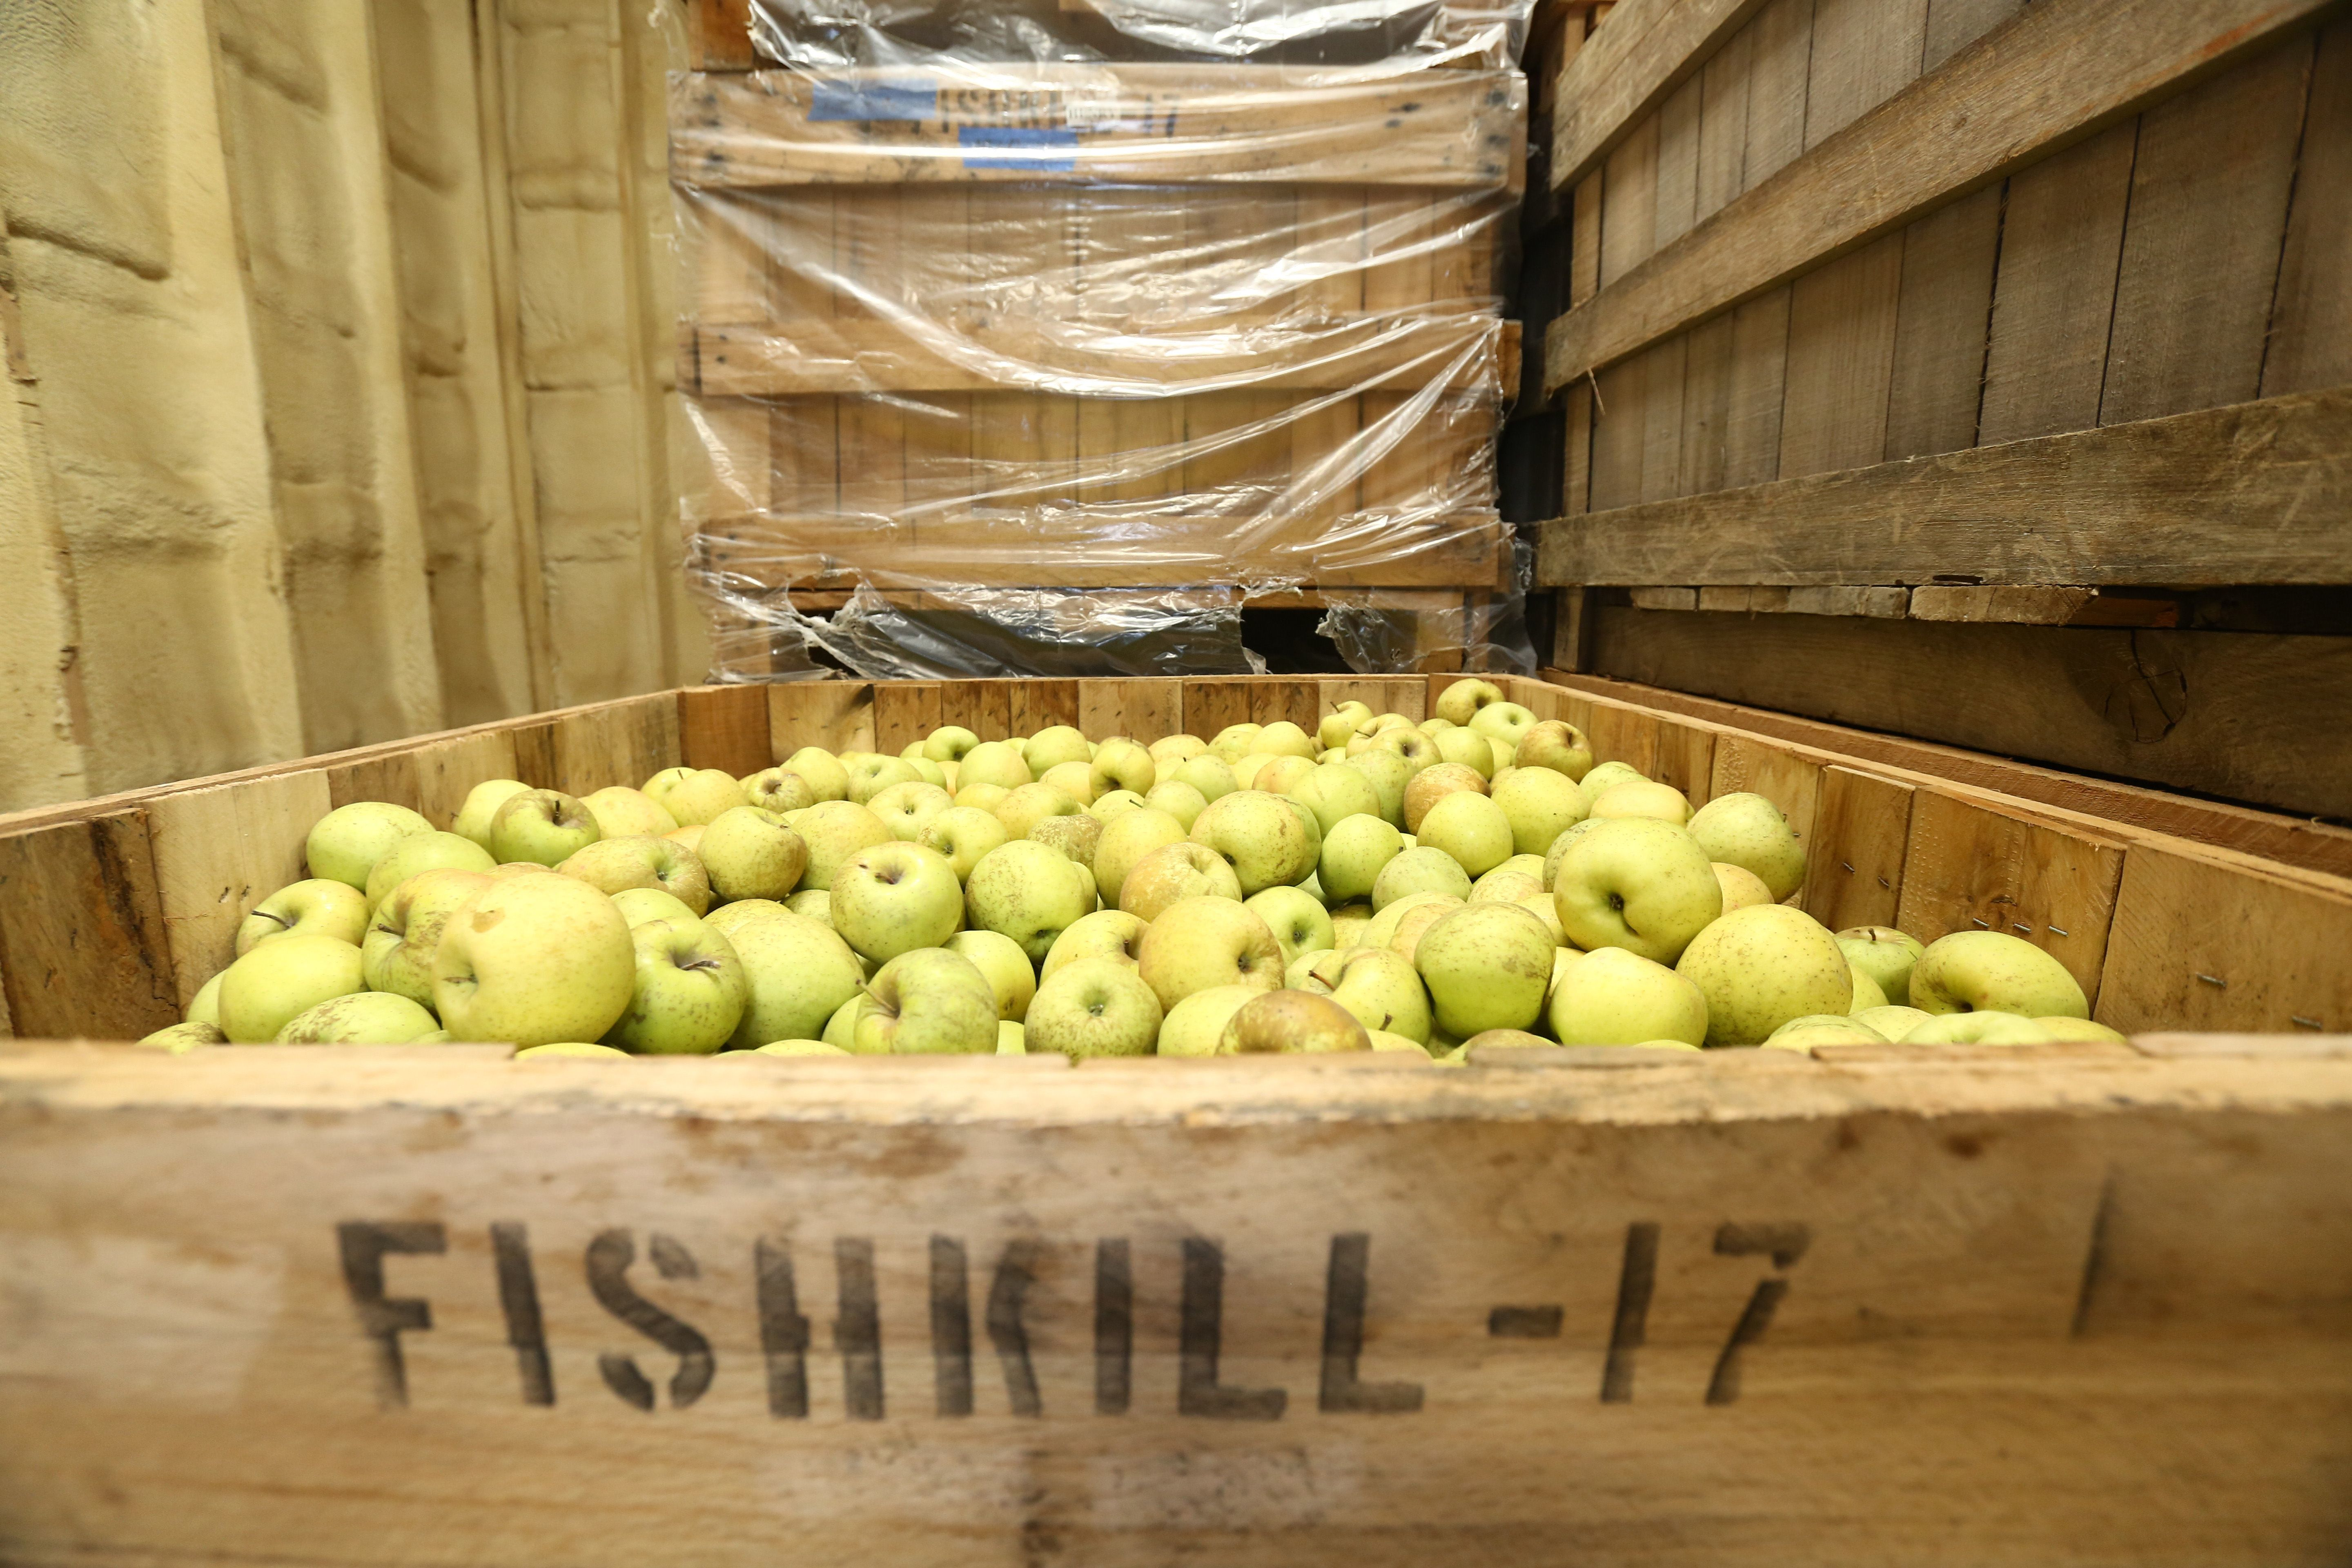 A bin of apples in cold storage is shown at Fishkill Farms on Thursday, February 8, 2018.